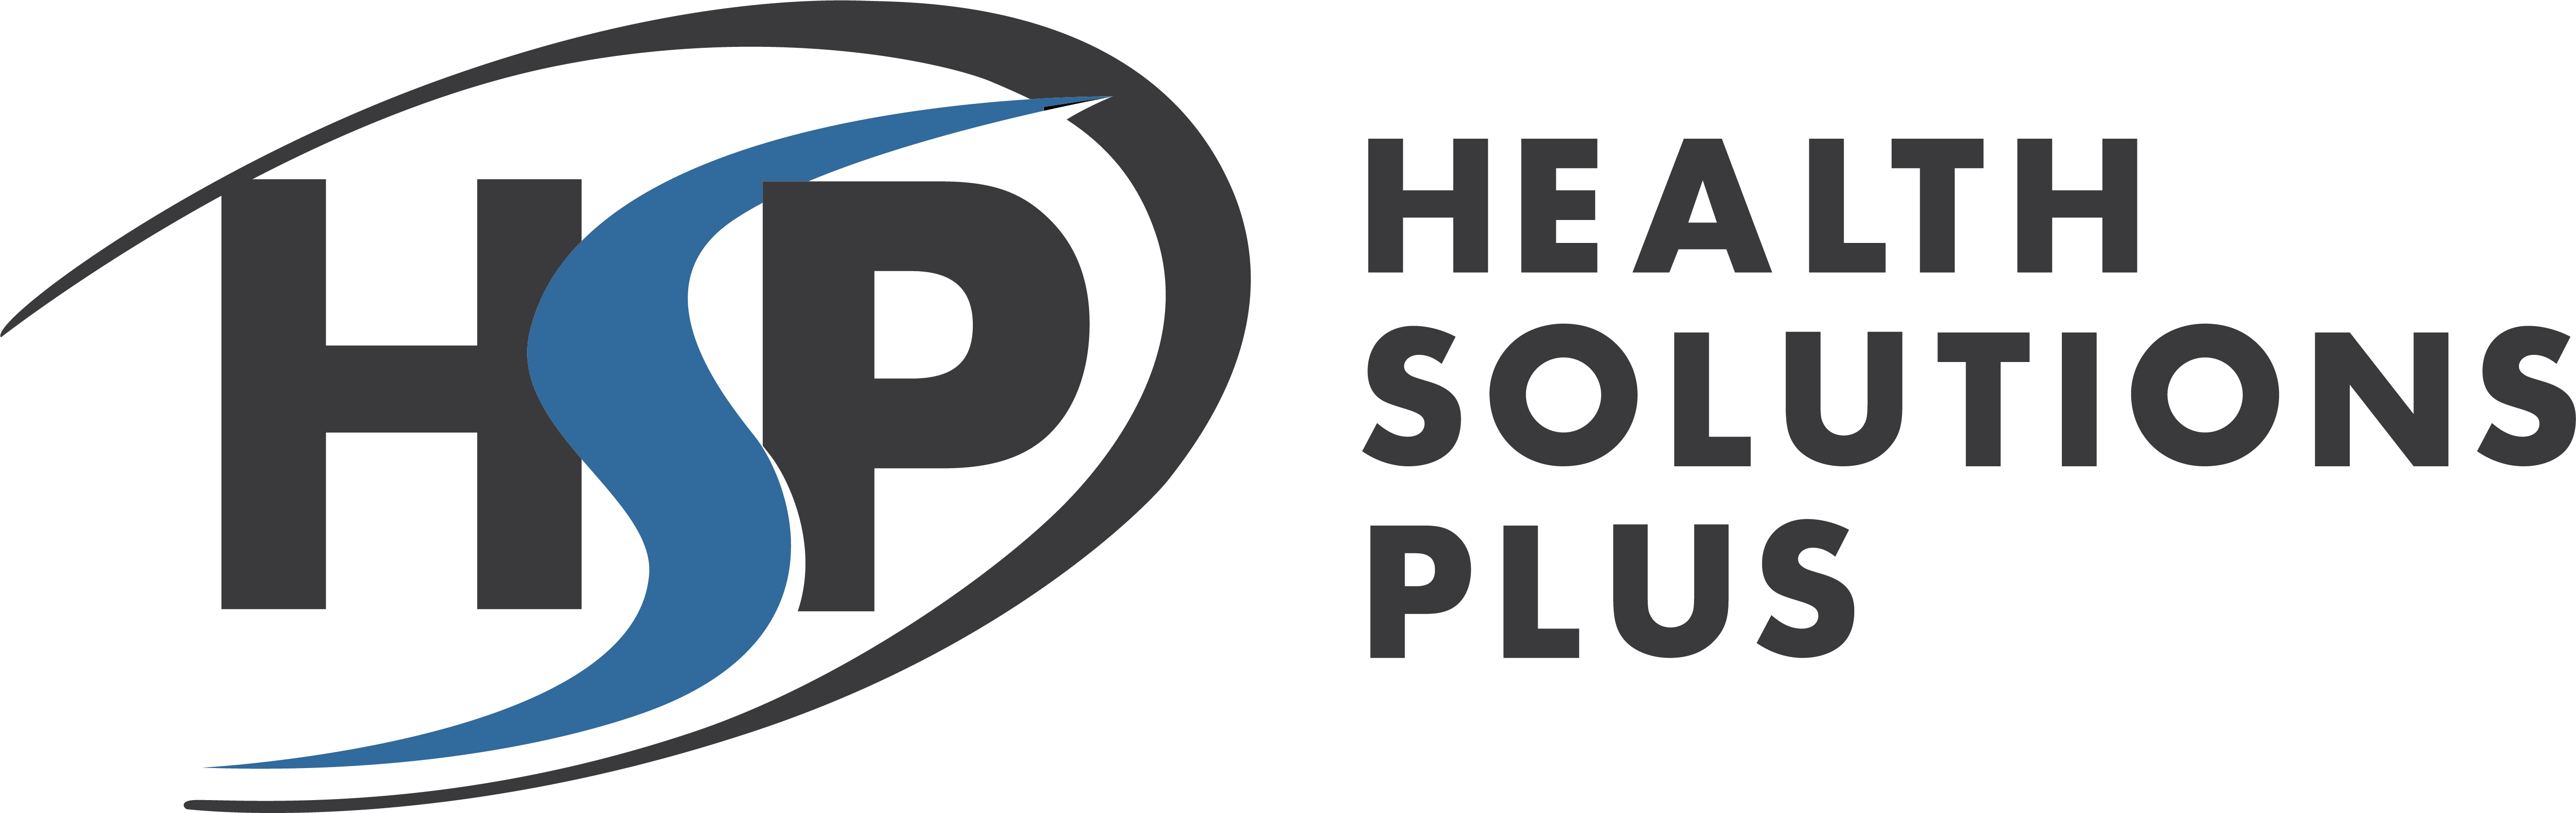 Health Solutions Plus (HSP)